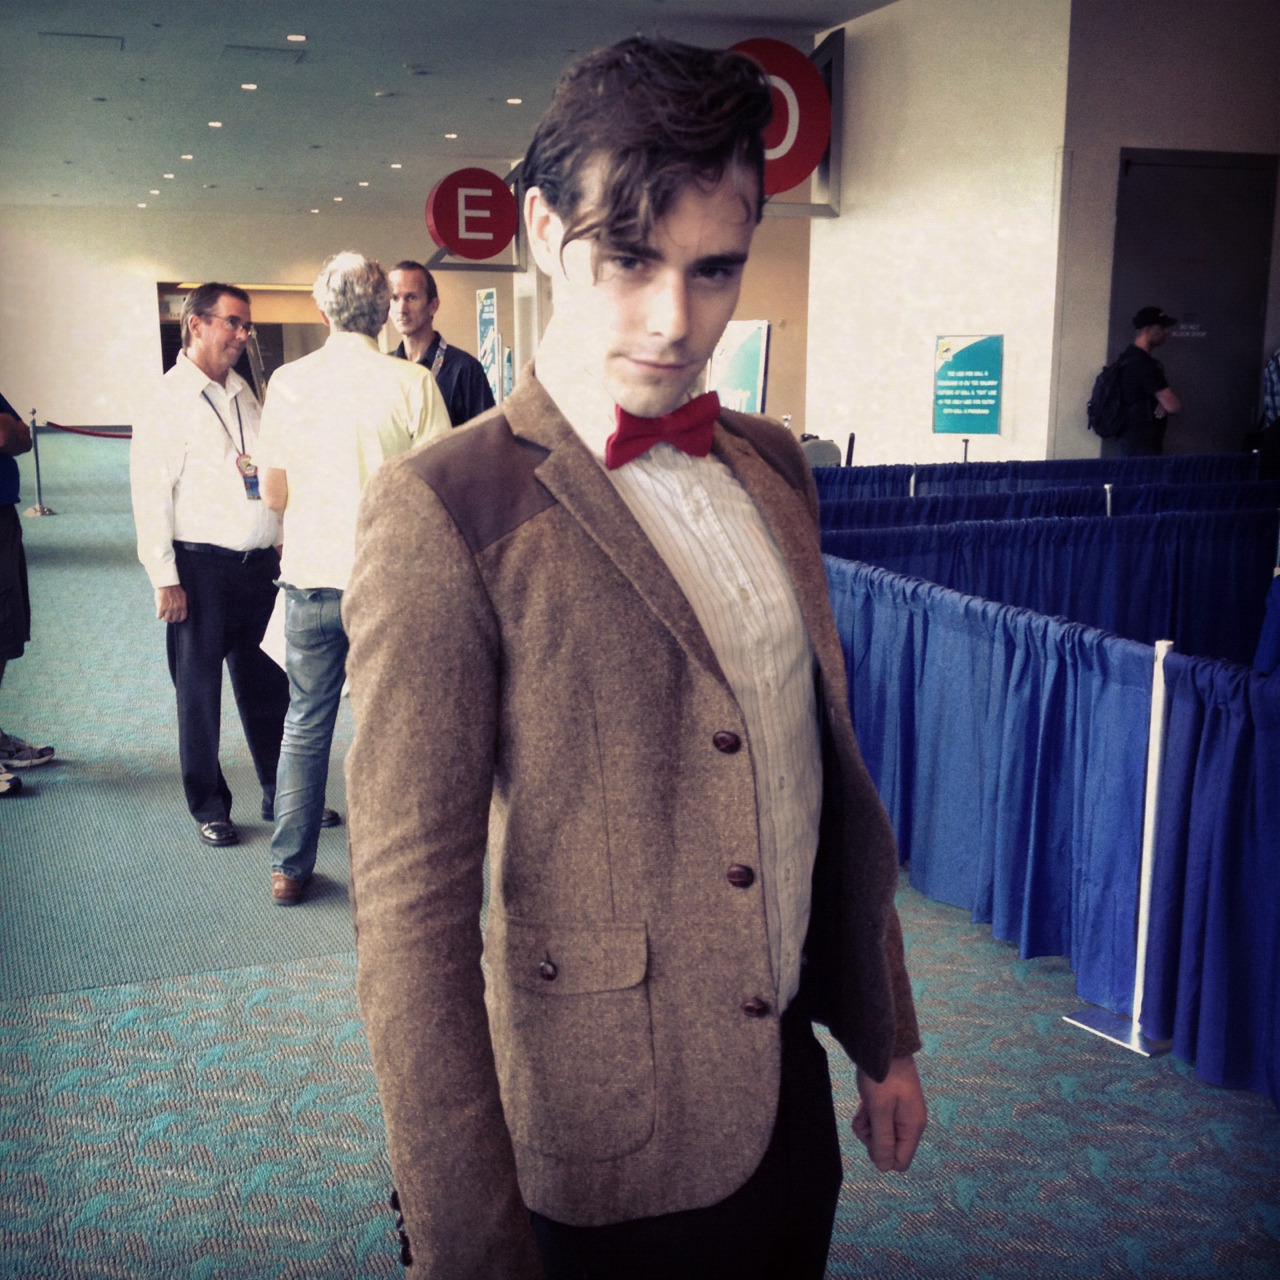 doctorwho:  btw, we ran into our first Eleventh Doctor cosplay as soon as we walked in the door. He doesn't have a Tumblr but his Twitter handle is @twittalot.  So in my friend little Conall's American Adventures he went off to Comic Con and managed to get himself on the official BBC Doctor Who Tumblr…Er, awesome factor's majorly shot straight up there!I'm stealing your sonic screw driver btw <3